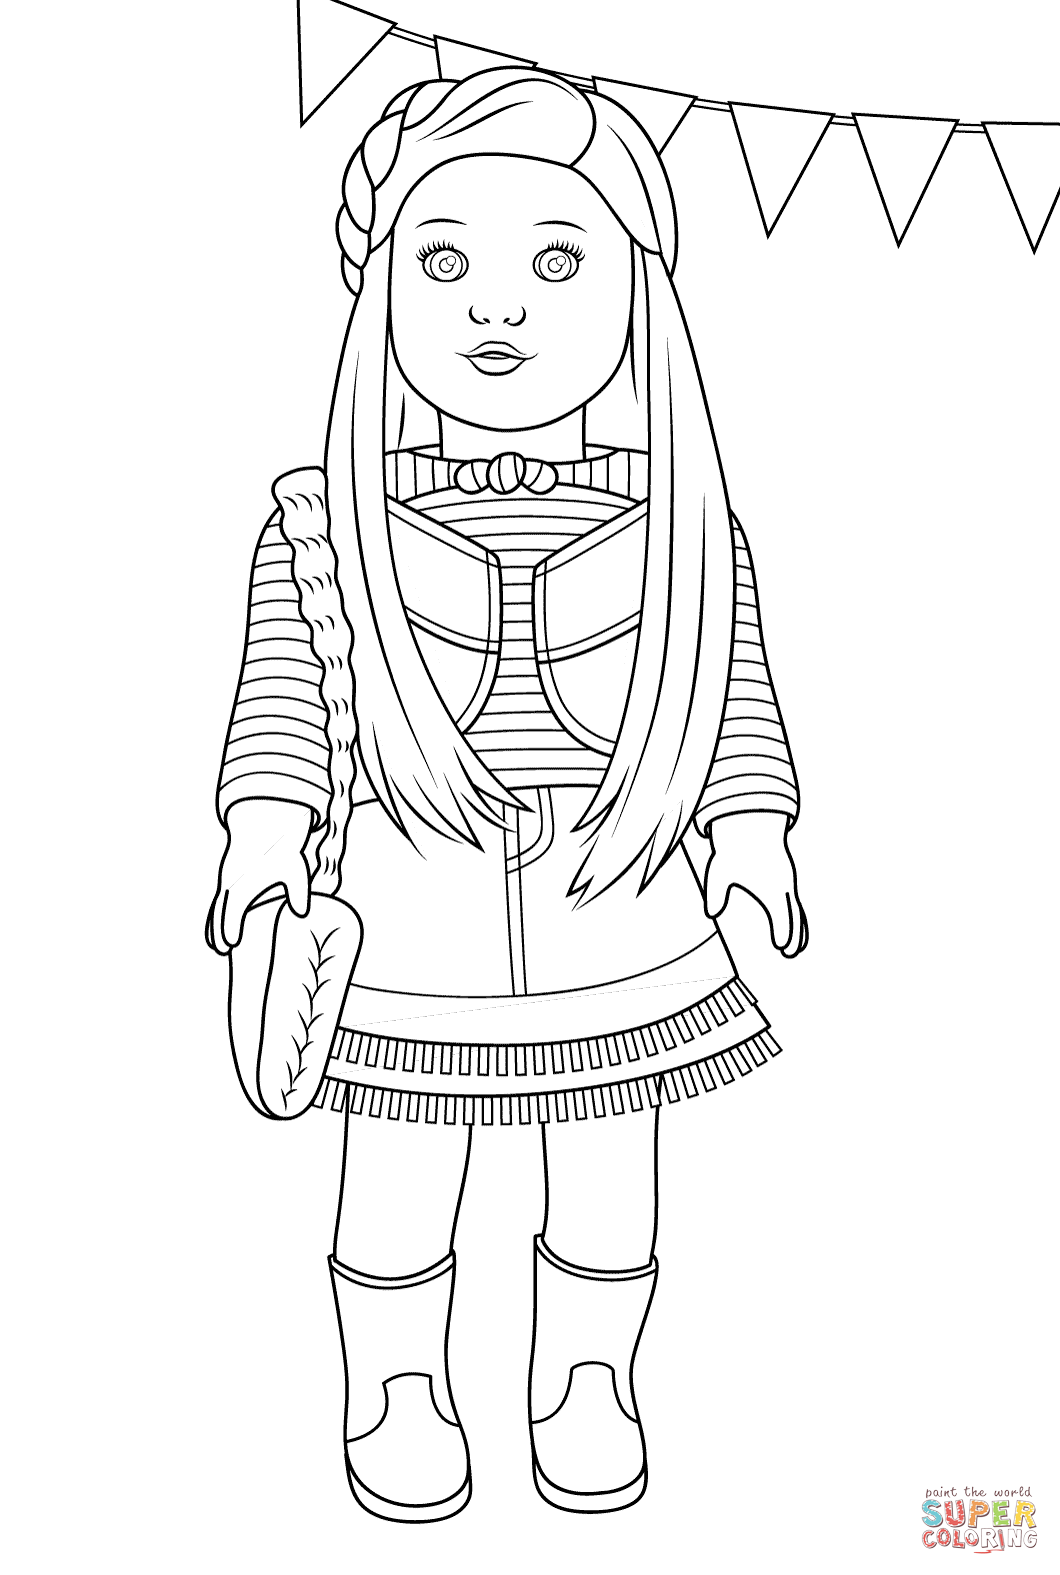 pictures of american girl dolls to color american girl doll coloring pages to download and print pictures dolls girl of color to american